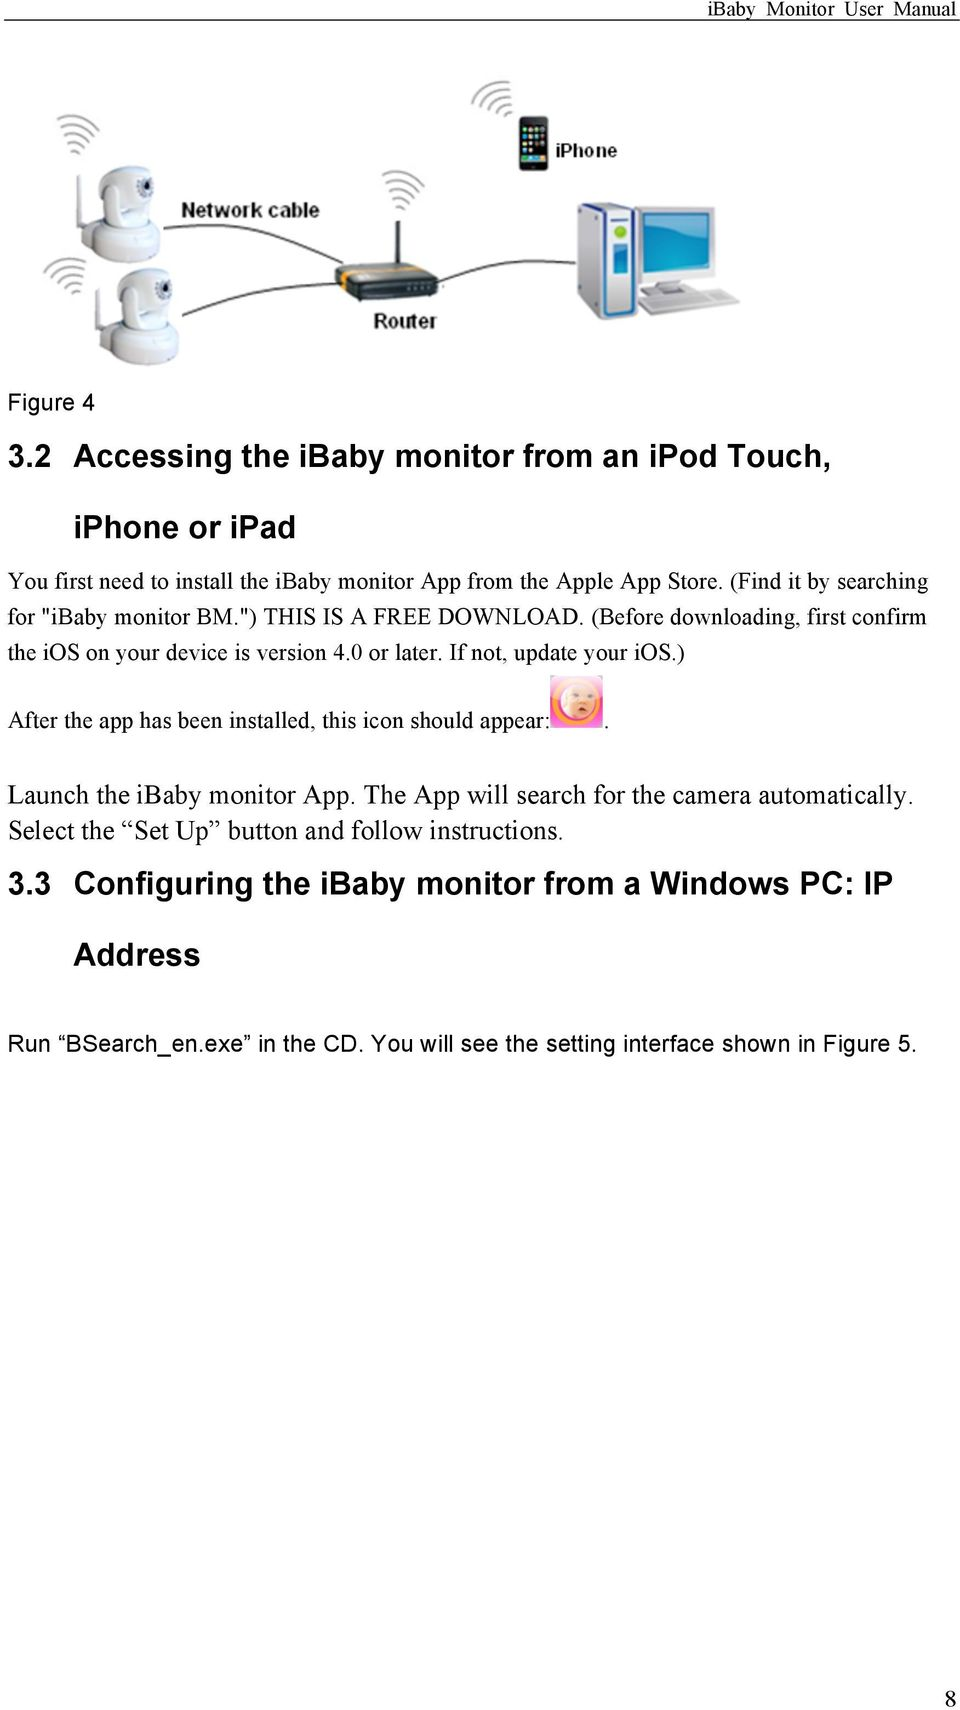 Ibaby Monitor Model M3 User Manual The Manufacturer Is Not Download Image 100 Amp Sub Panel Wiring Diagram Pc Android Iphone If Update Your Ios After App Has Been Installed This